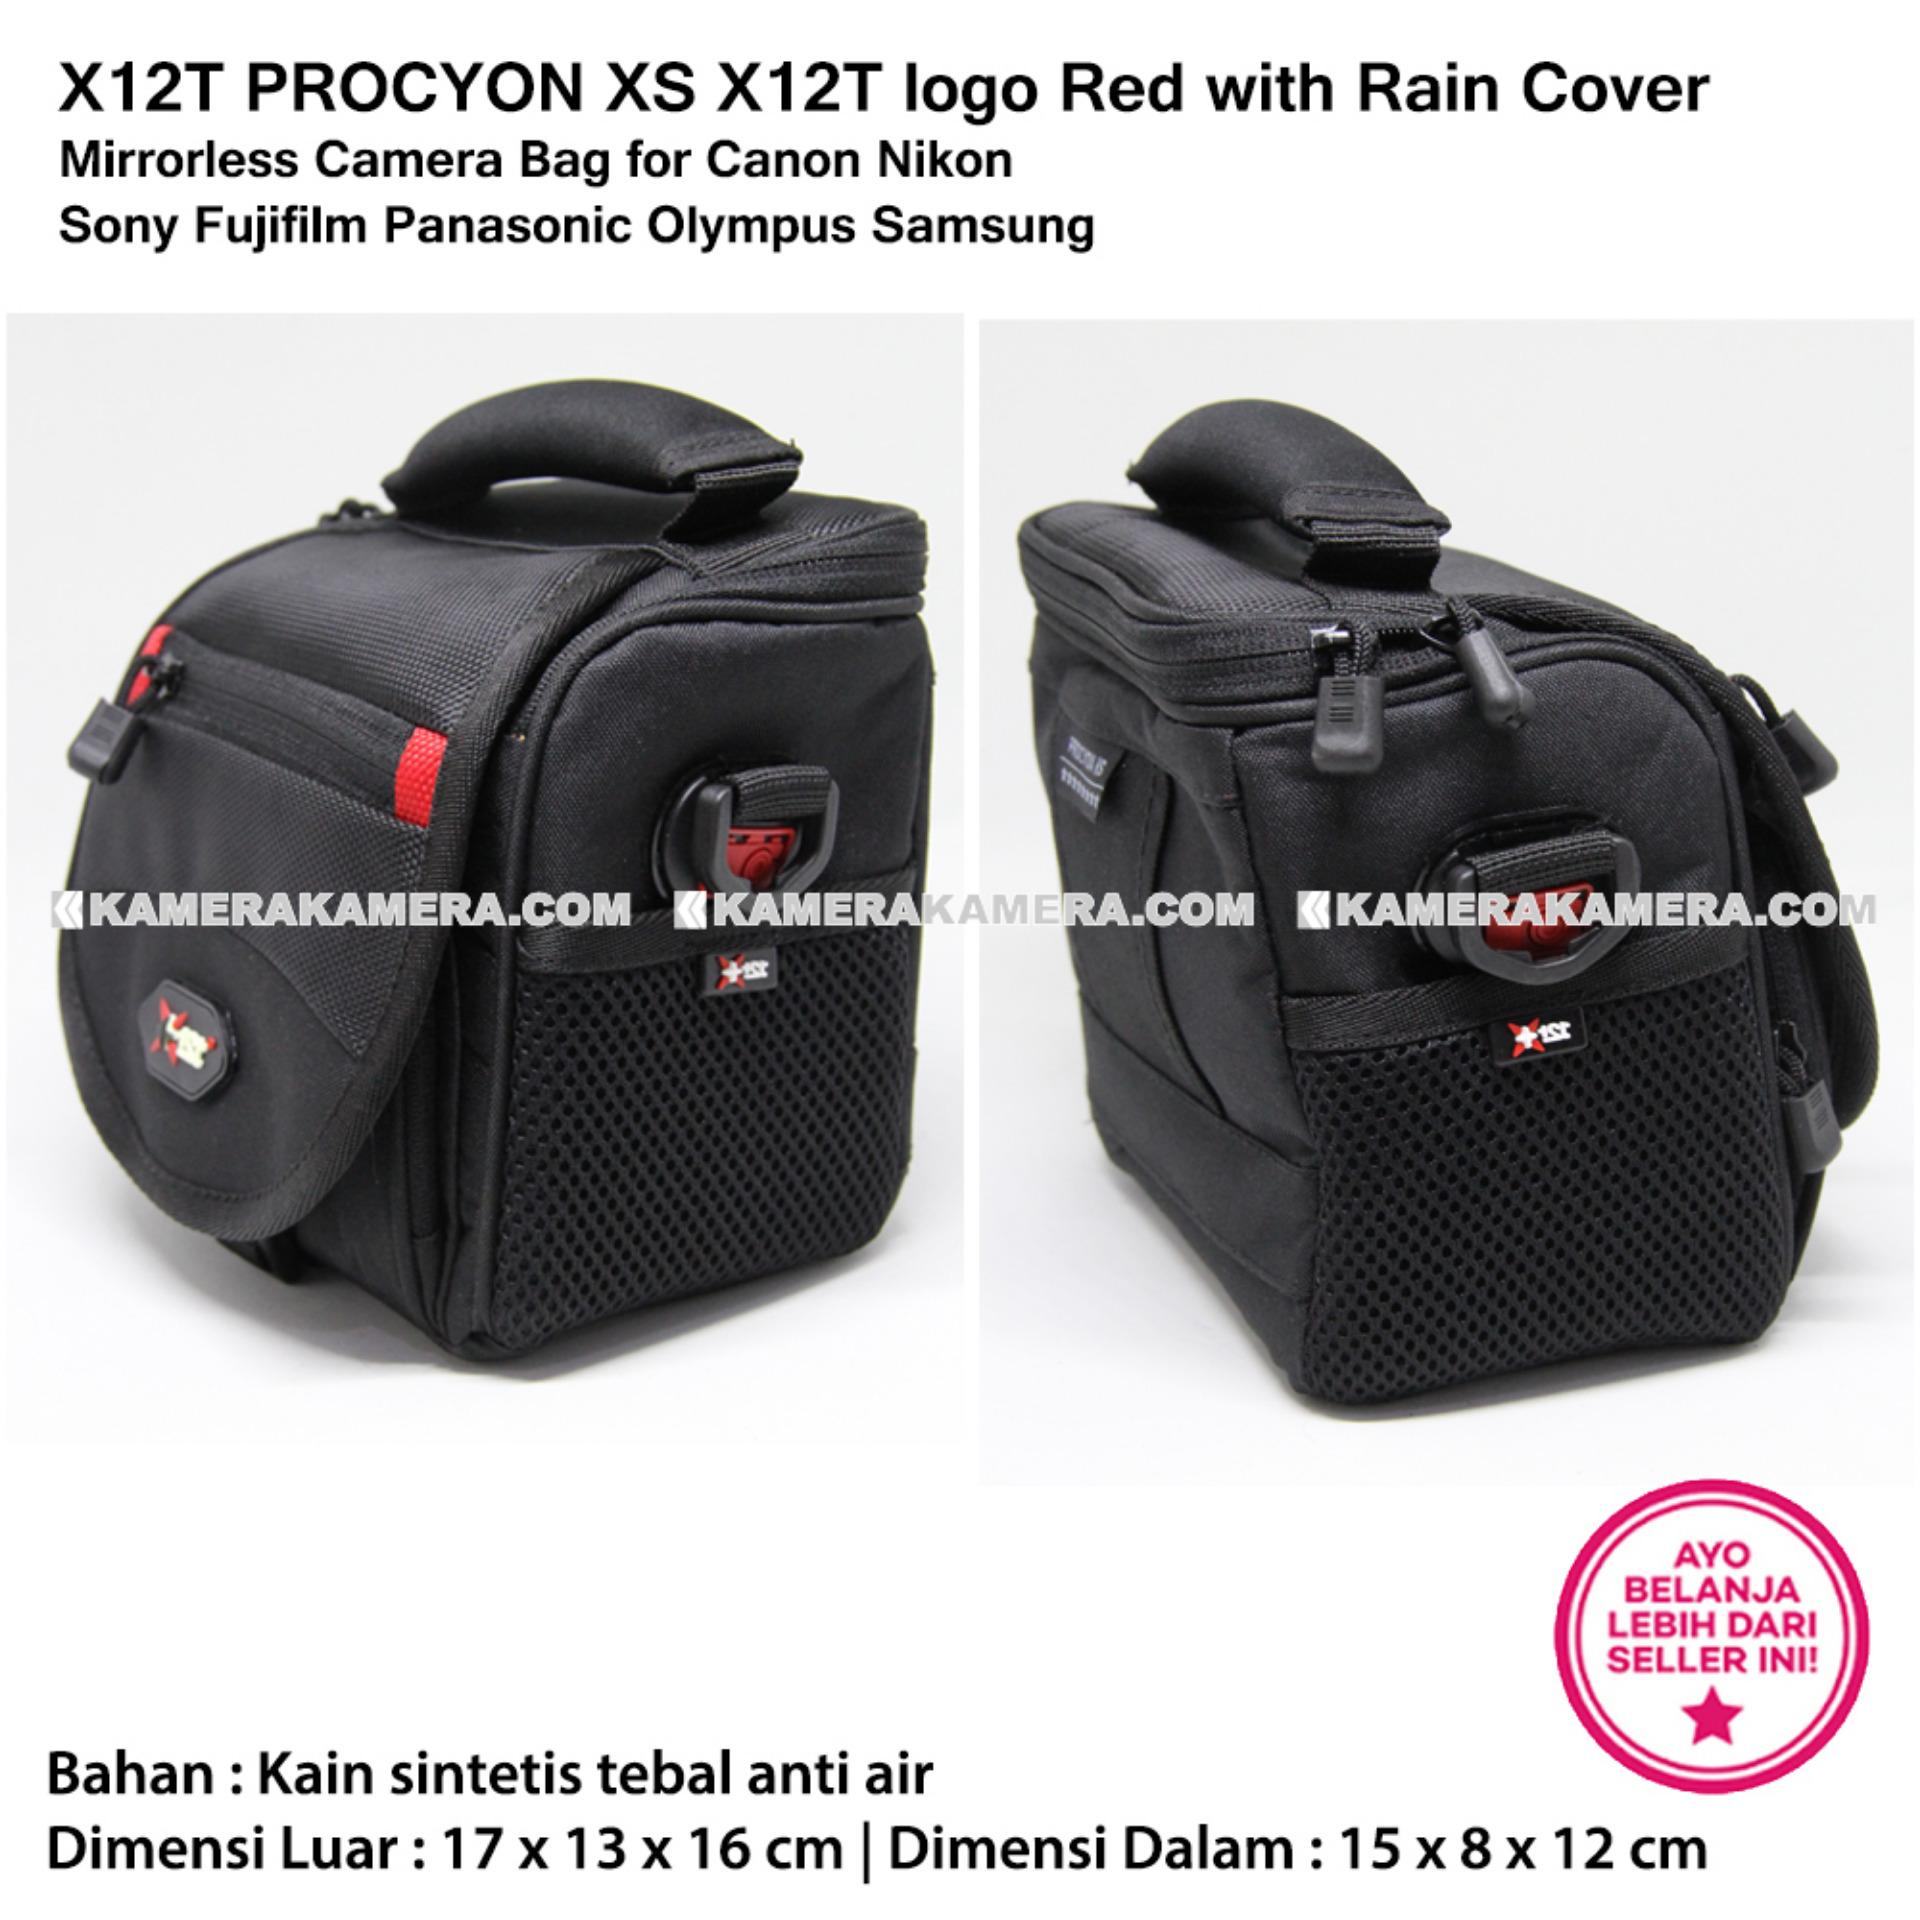 X12t Procyon S Aw Logo Red With Rain Cover Mirrorless Camera Sdv Mr 502c Bag Xs For